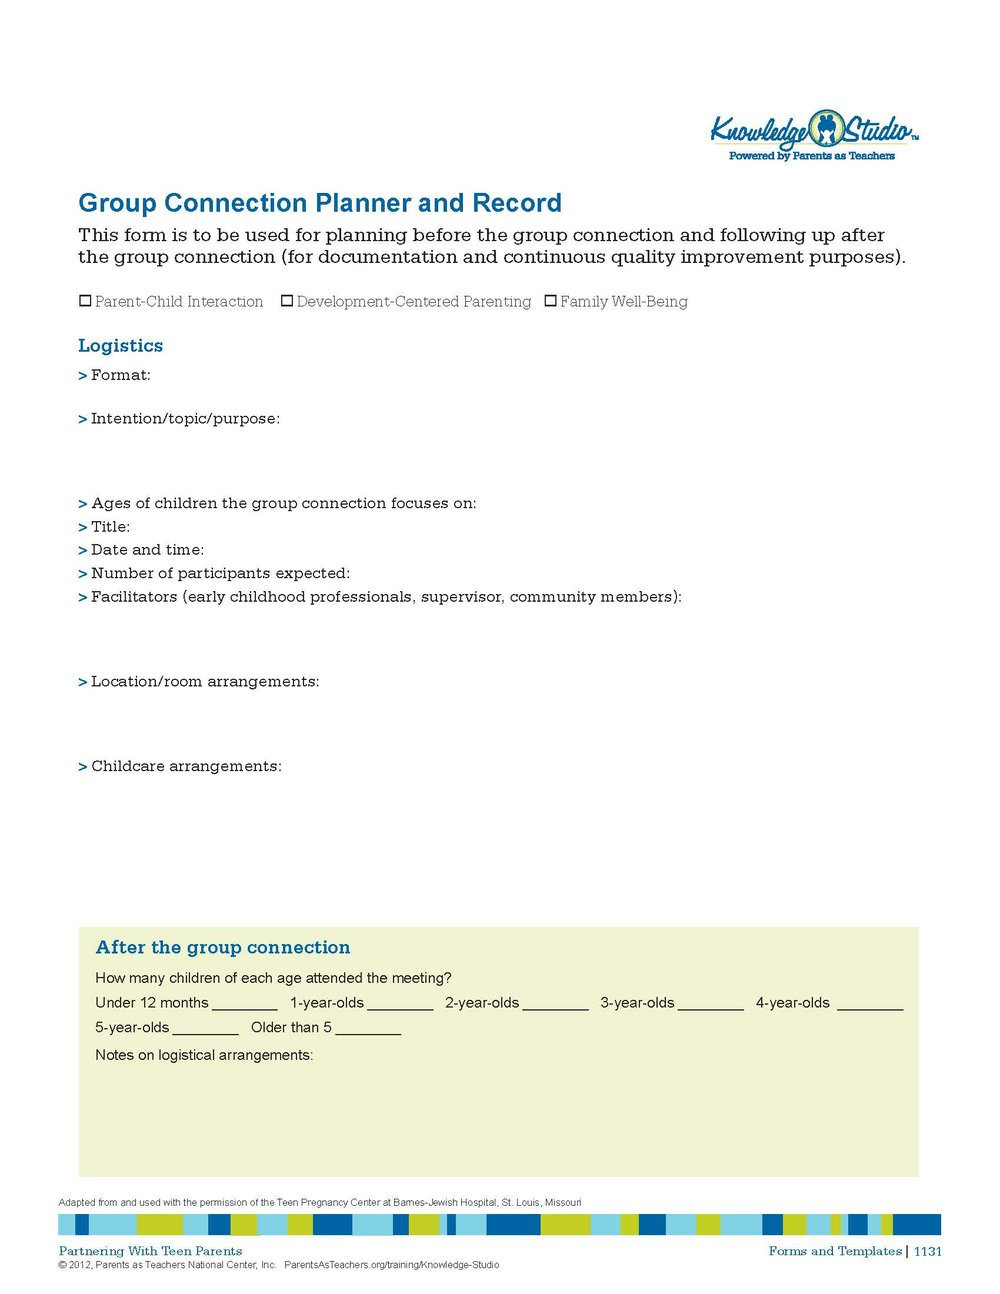 Group Connection Planner and Record